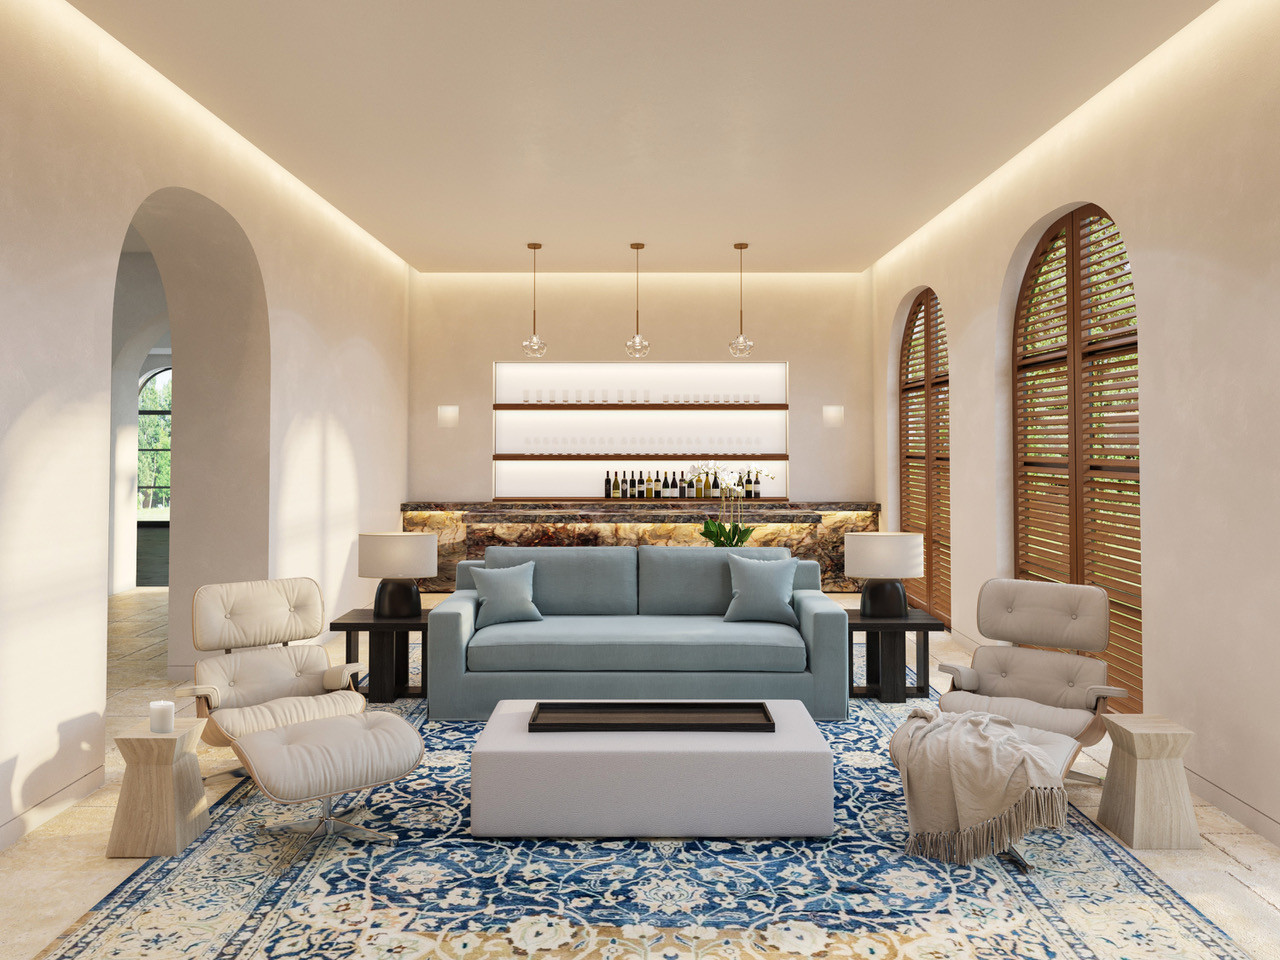 W Residence - Concept